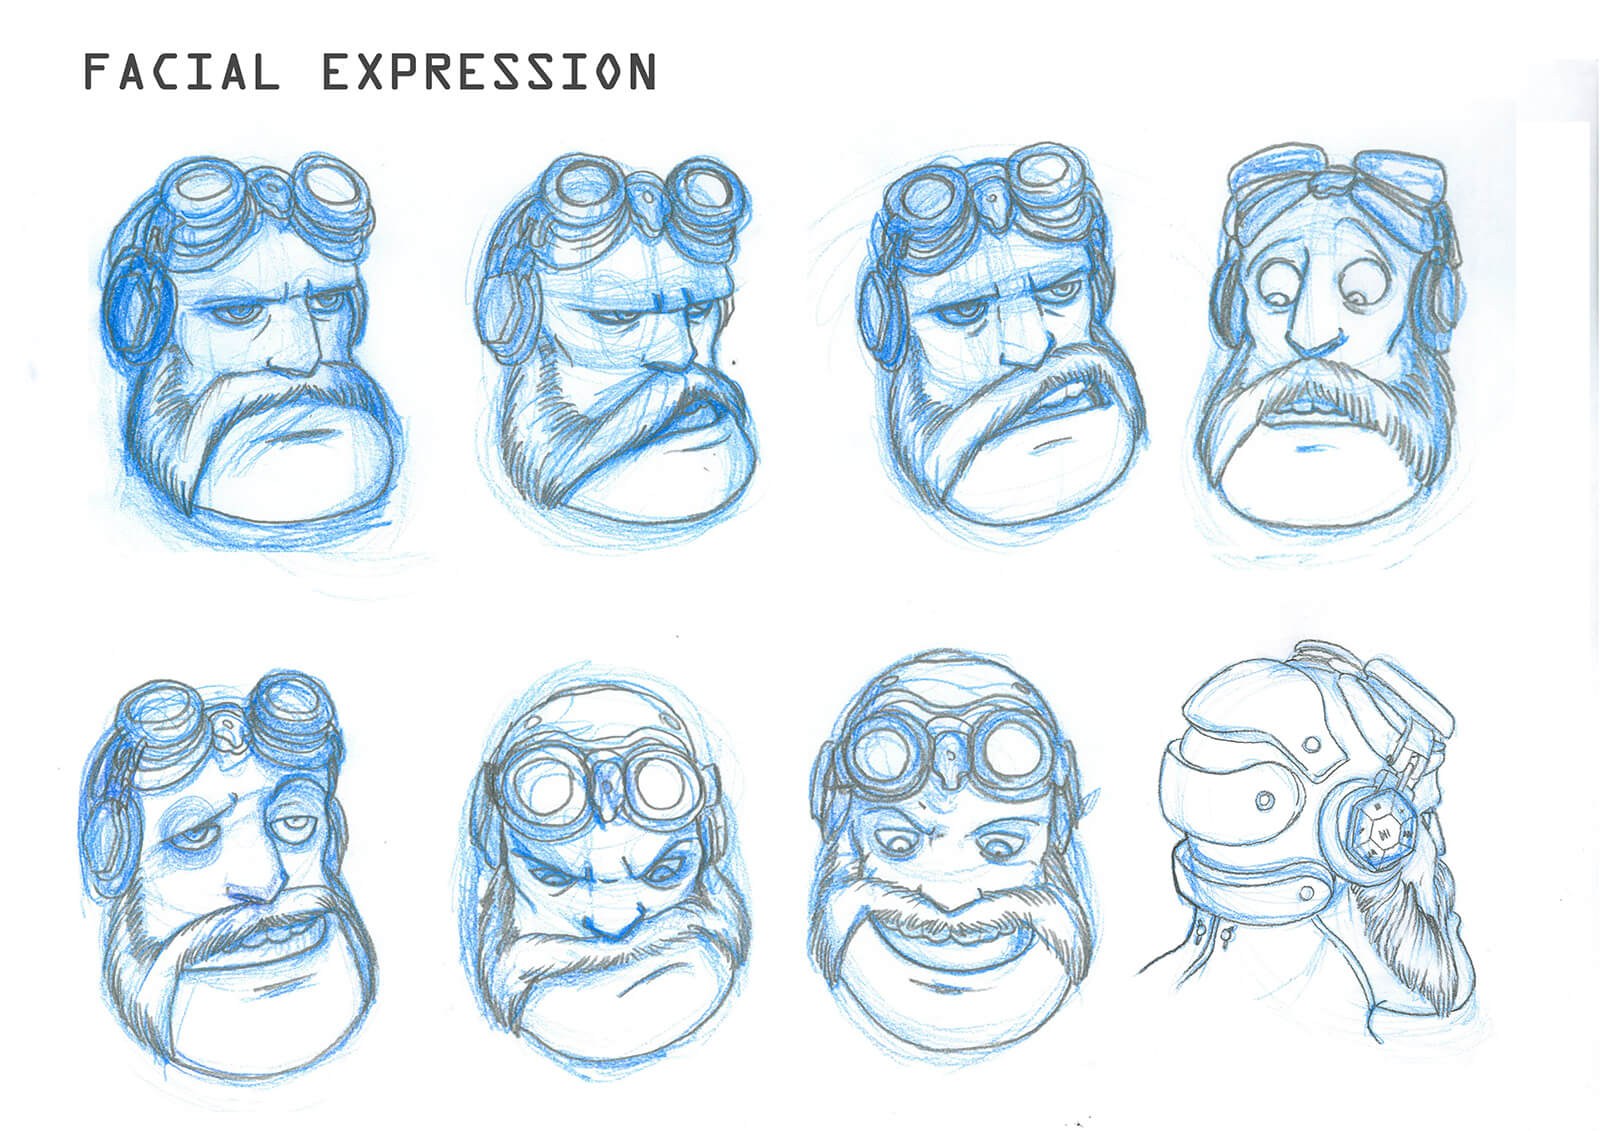 Blue and black sketches of facial expressions of a bearded man with goggles, depicting surprise and frustration among others